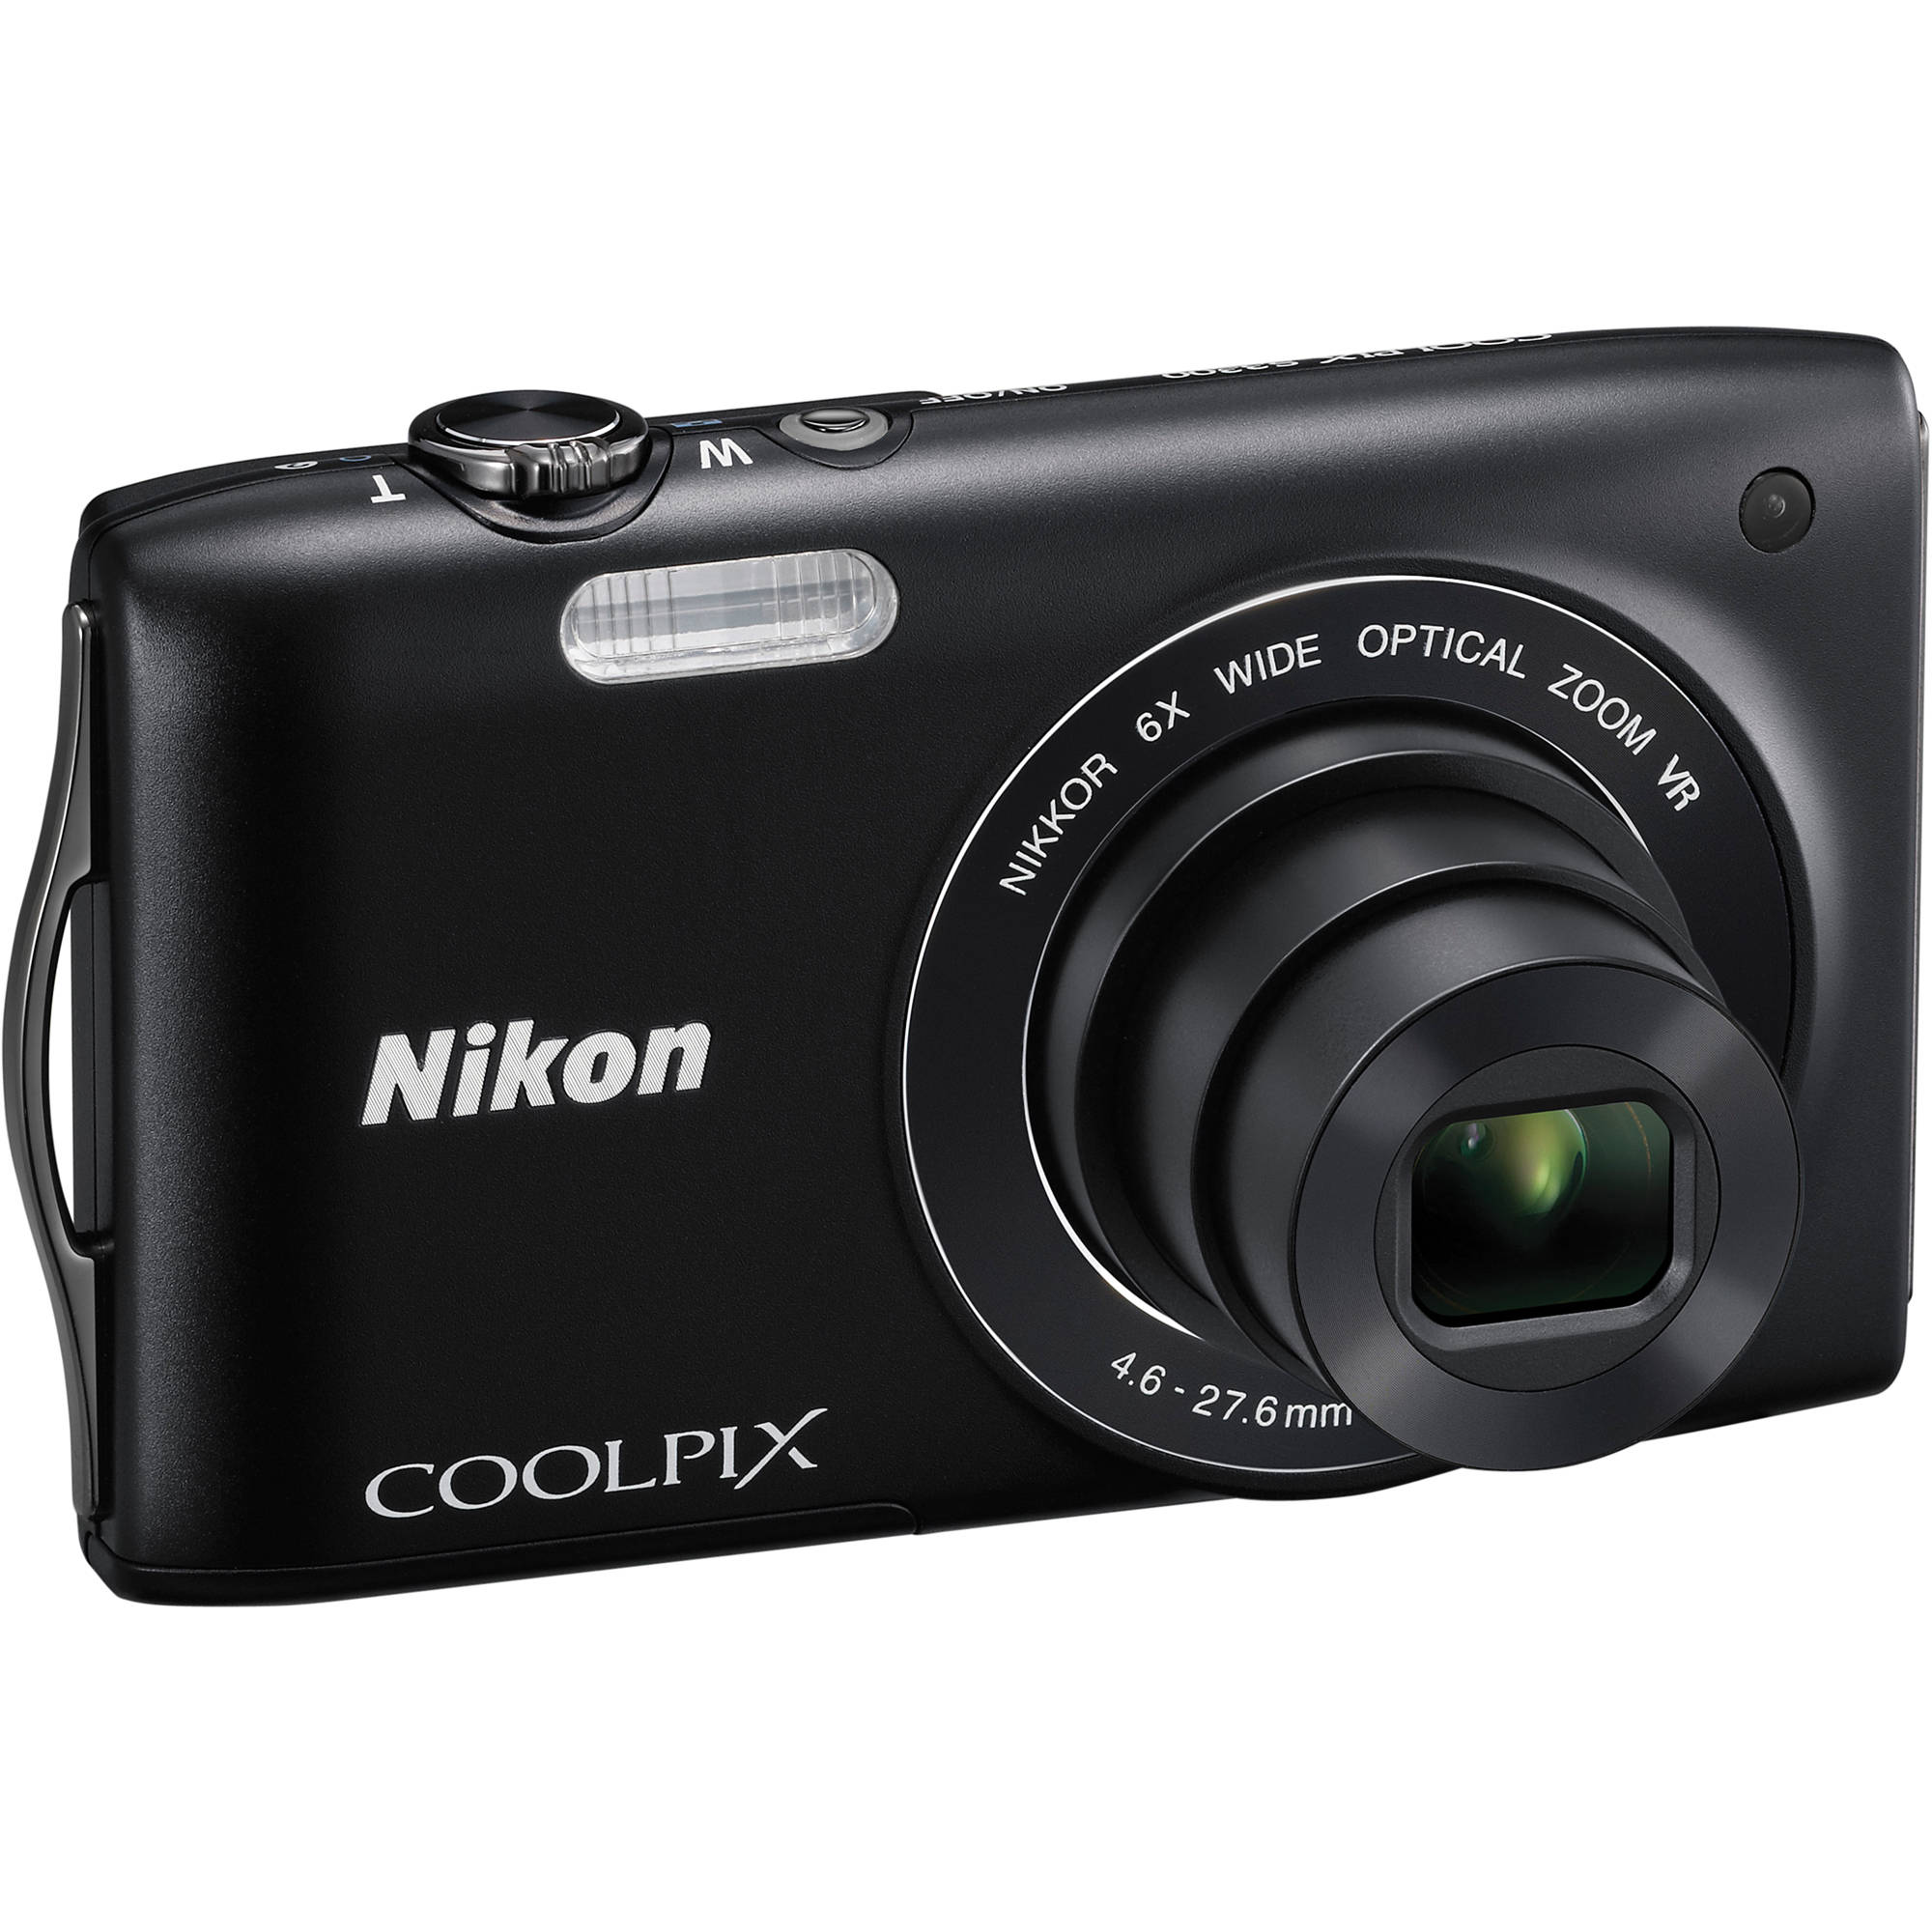 DRIVER FOR NIKON COOLPIX S202